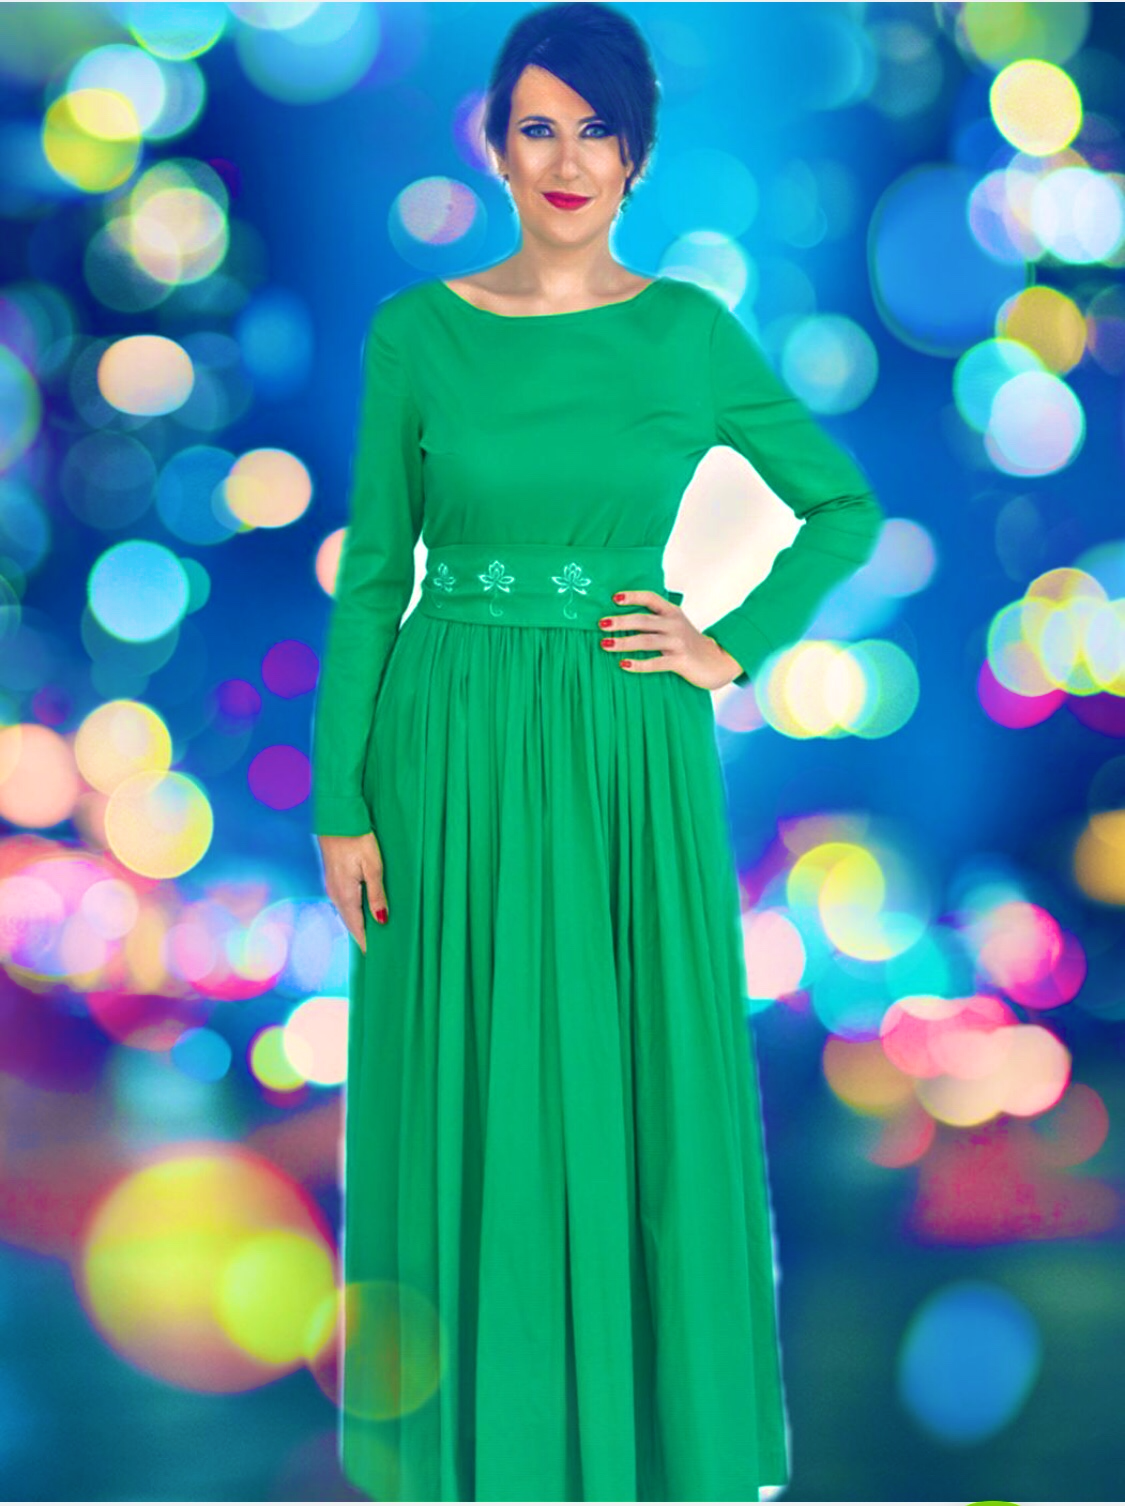 Green Cotton Maxi Dress With Long Sleeves And Embroideries Maxi Dress Cotton Maxi Dress Green Dresses [ 1506 x 1125 Pixel ]